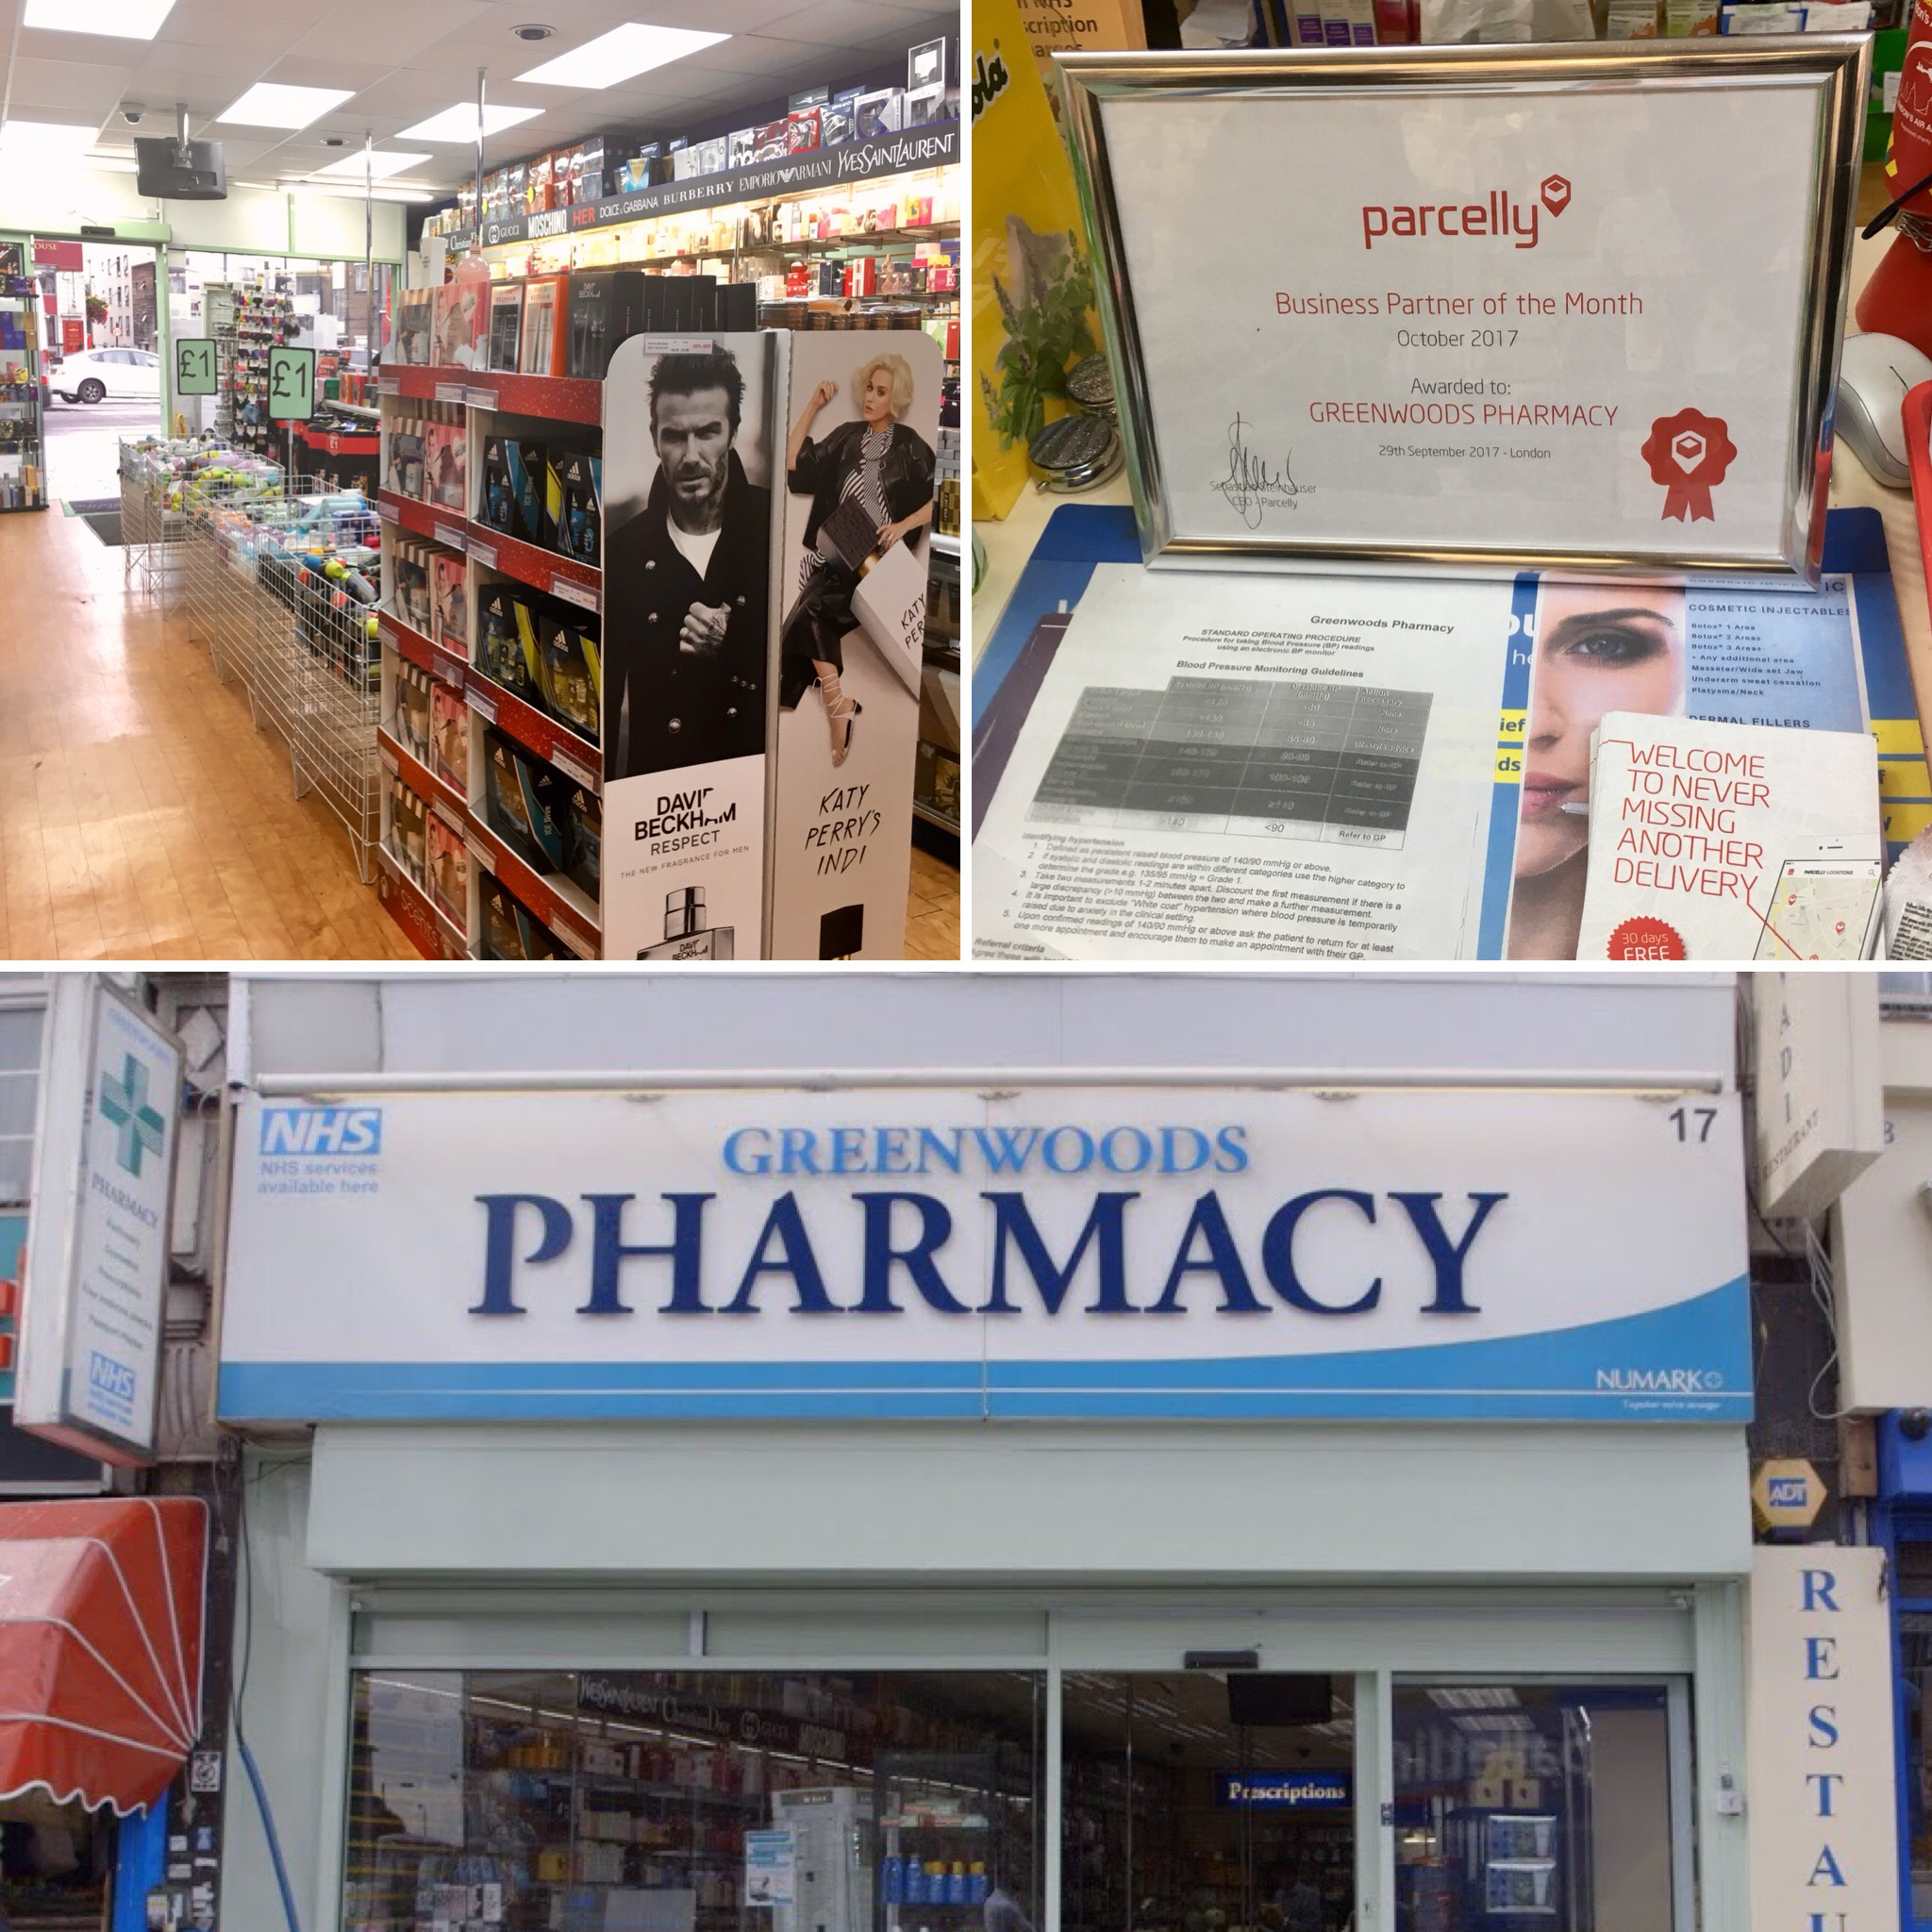 10 October LocationSpotlight Greenwoods Pharmacy Collage